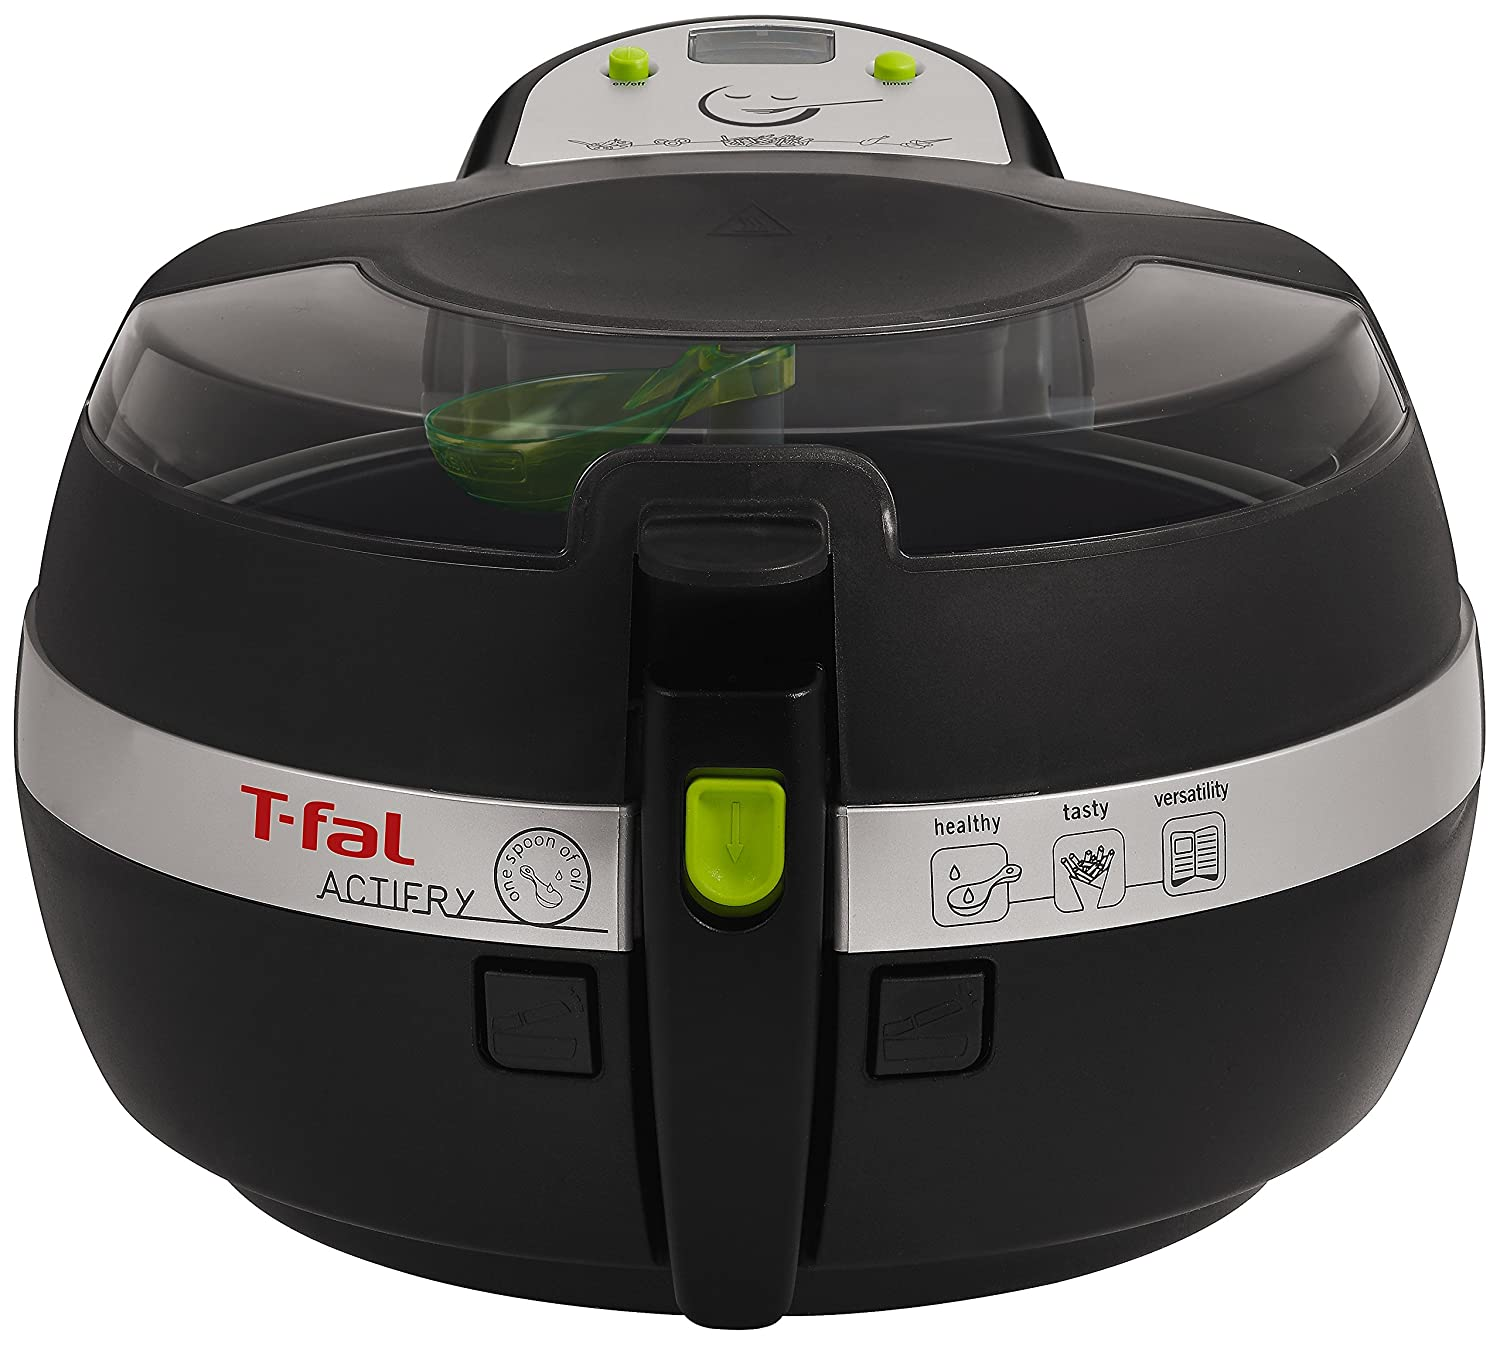 top-5-air-fryer-options-of-2017-2